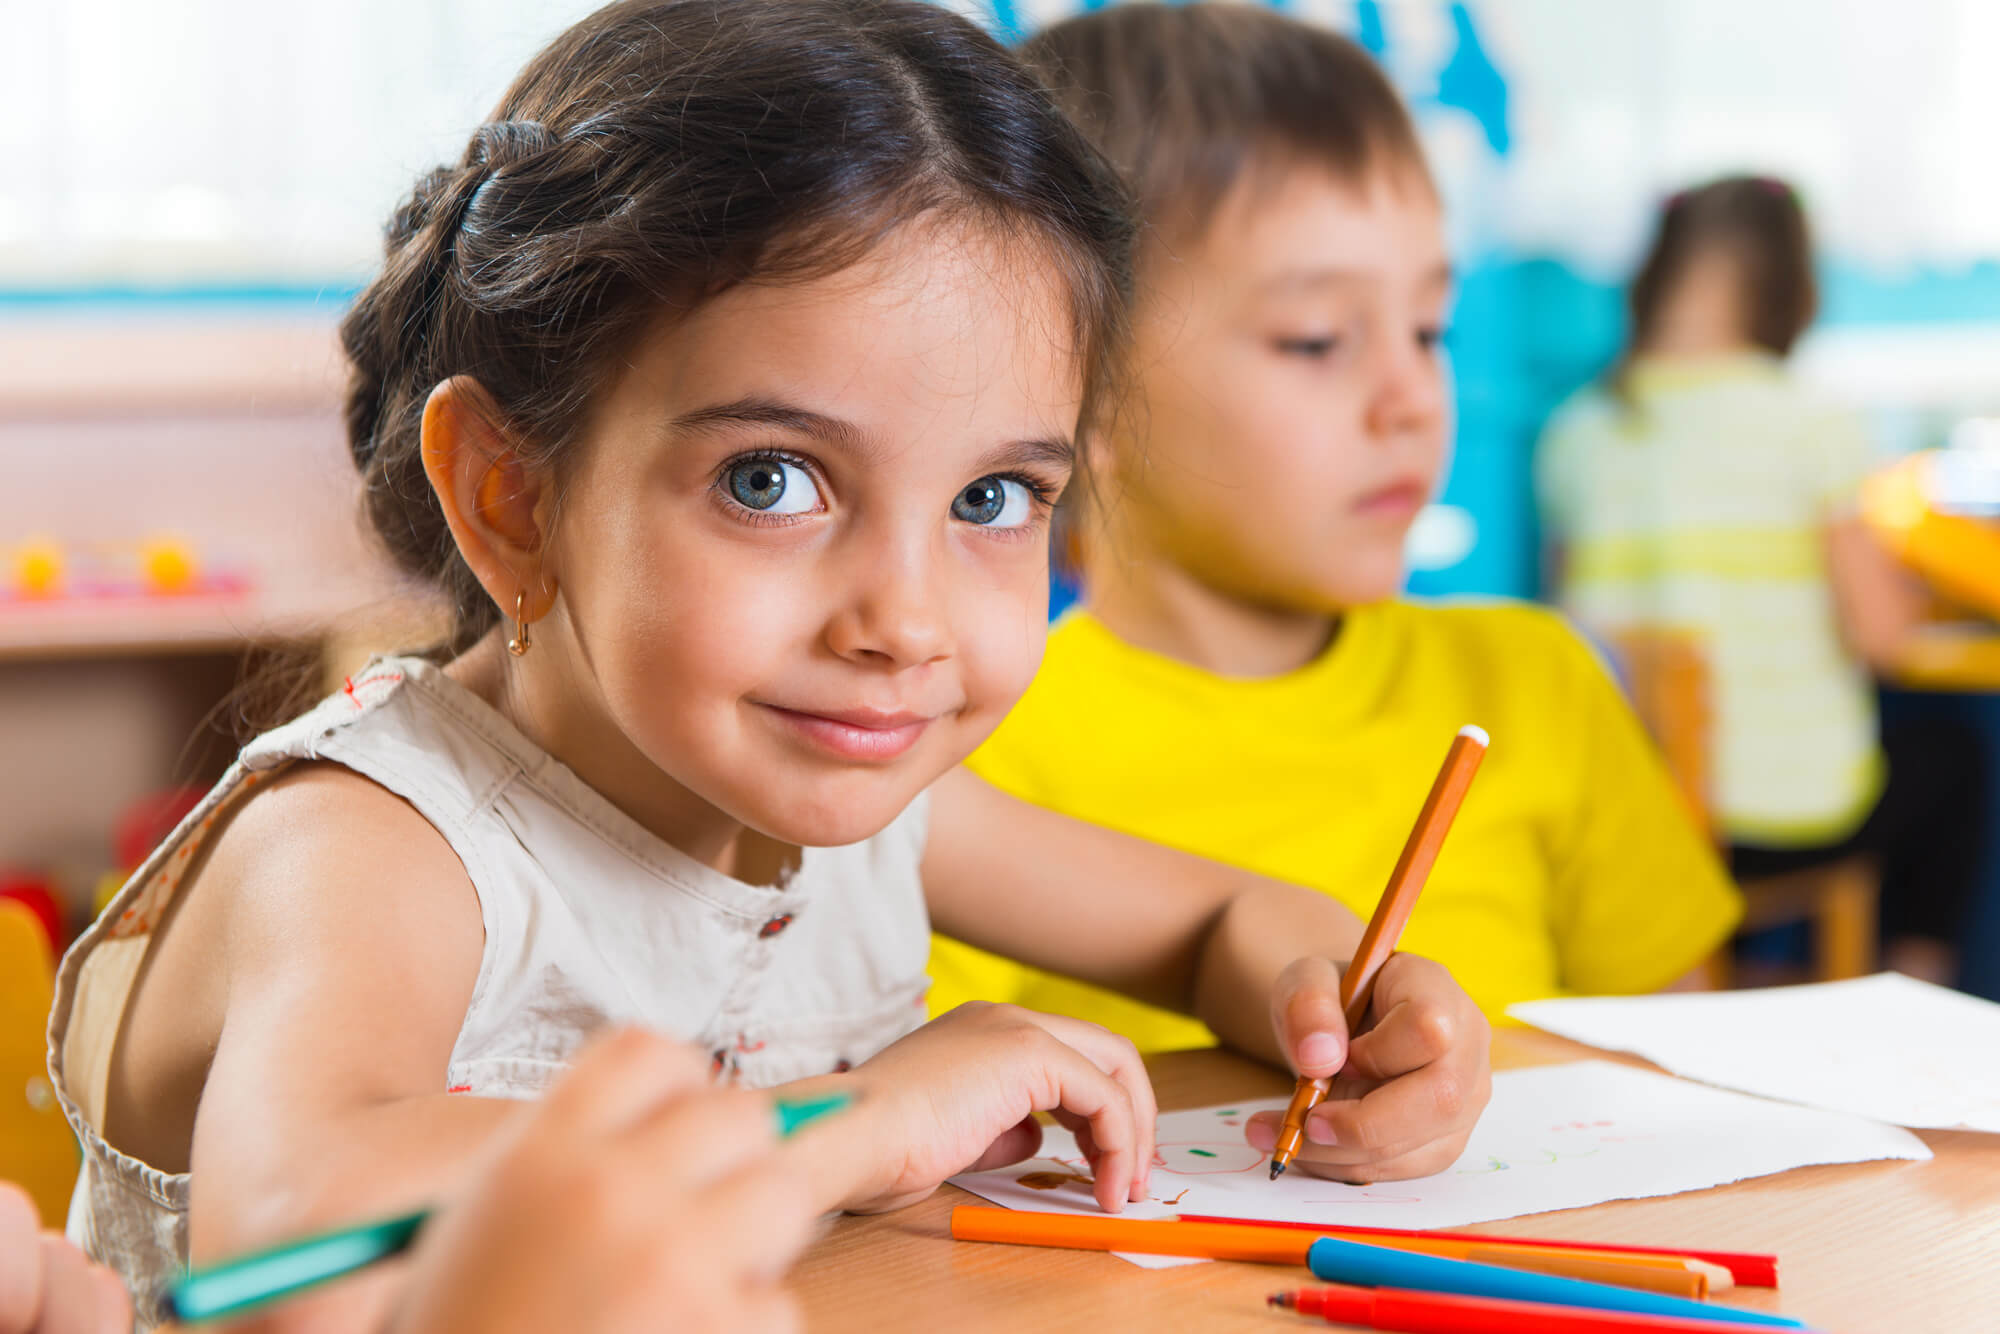 7 Signs Your Child Might Have an Executive Functioning Disorder